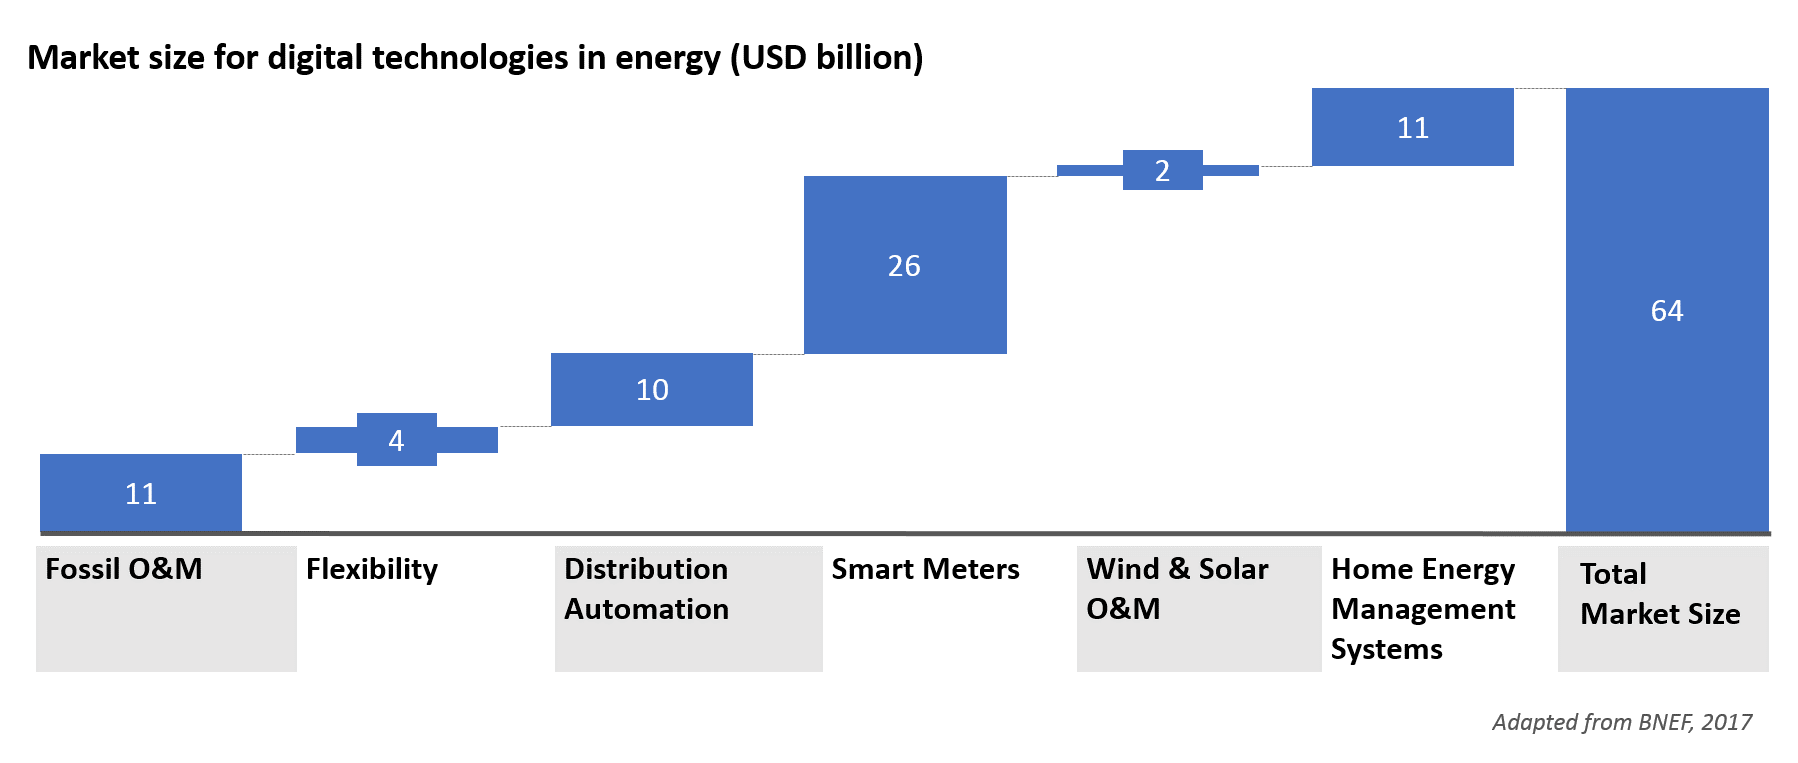 Market size for digital technologies in energy (USD billion)